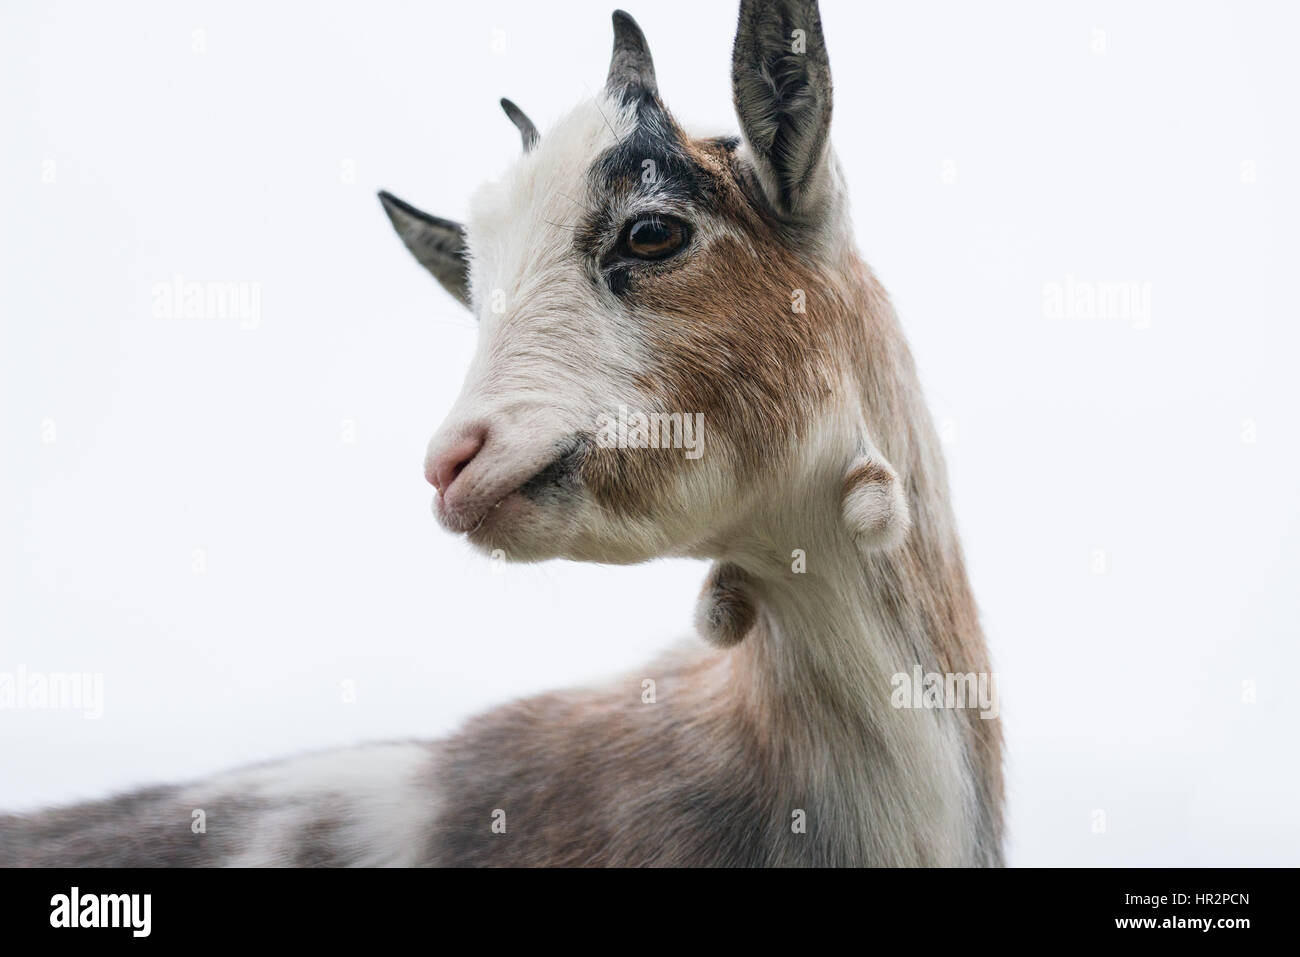 Close up of the face of a brown and white pygmy goat - Stock Image